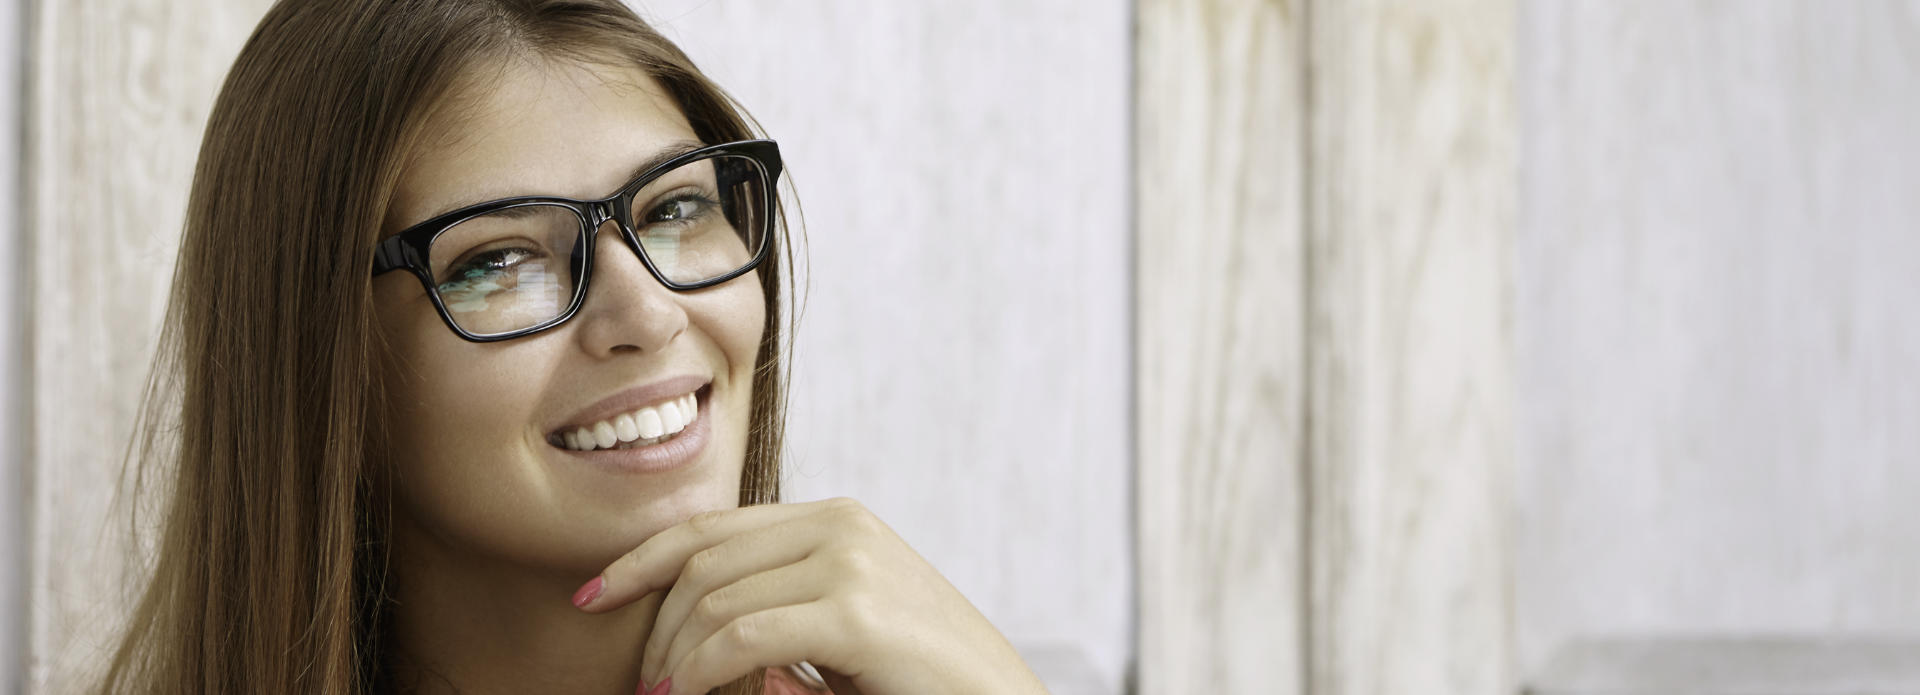 cheerful woman in glasses